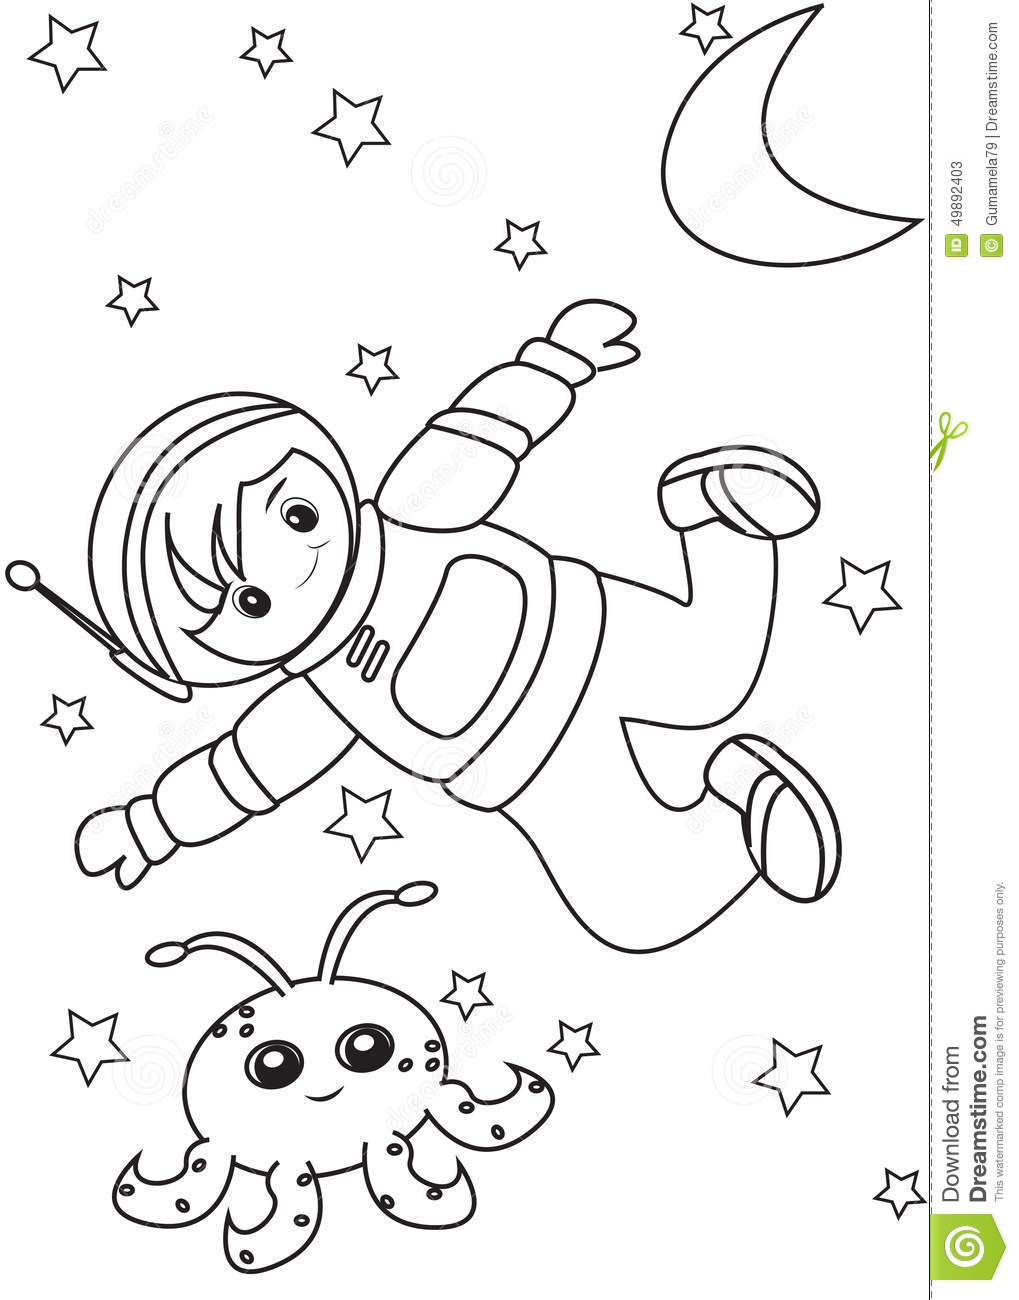 Generous Astronaut Coloring Pages For Kids Gallery - Entry Level ...